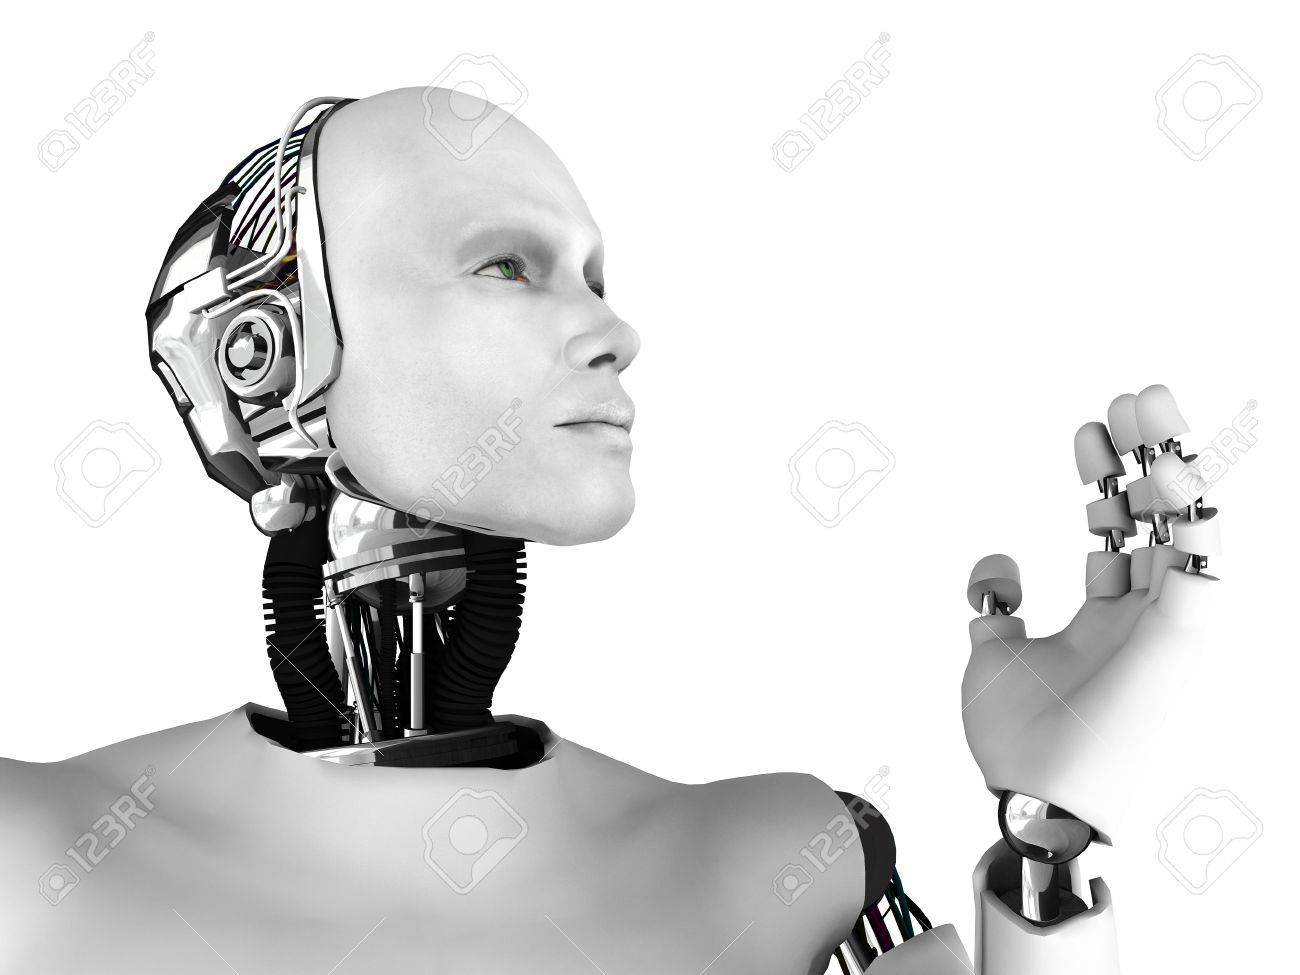 The profile of a male robot gazing into the future. Isolated on white background. Stock Photo - 9177596